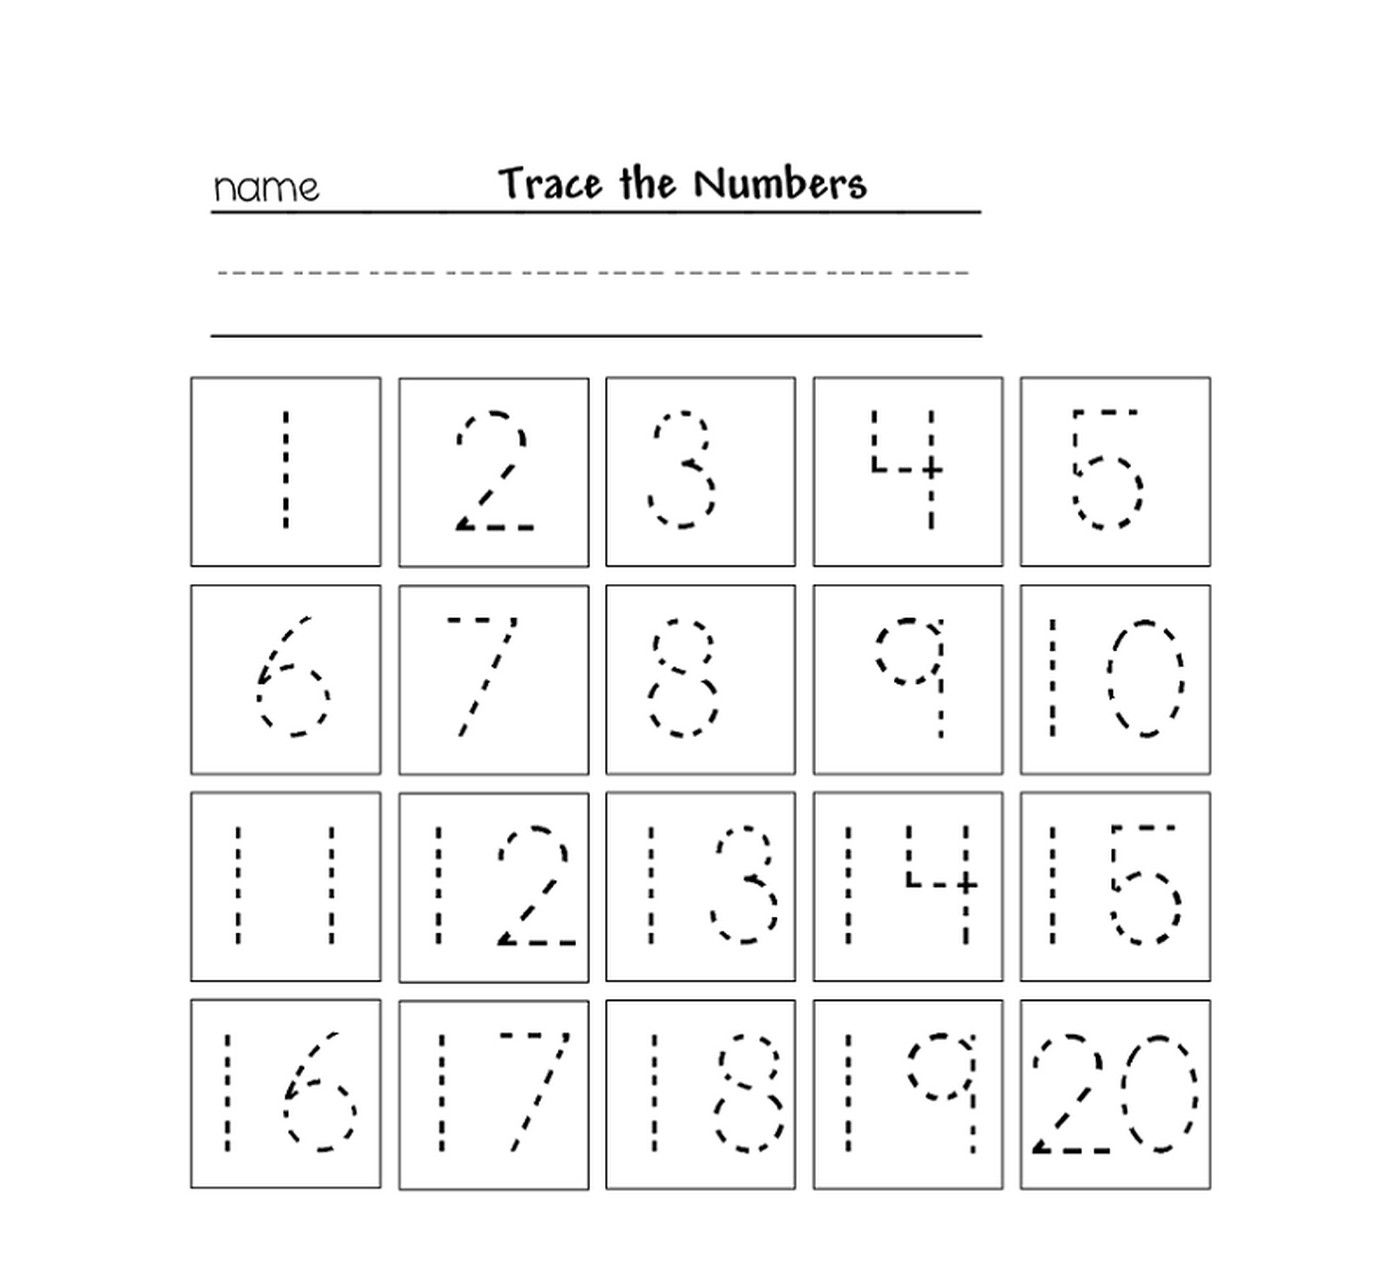 tracing numbers for kg printable worksheet | Alphabets and Numbers ...